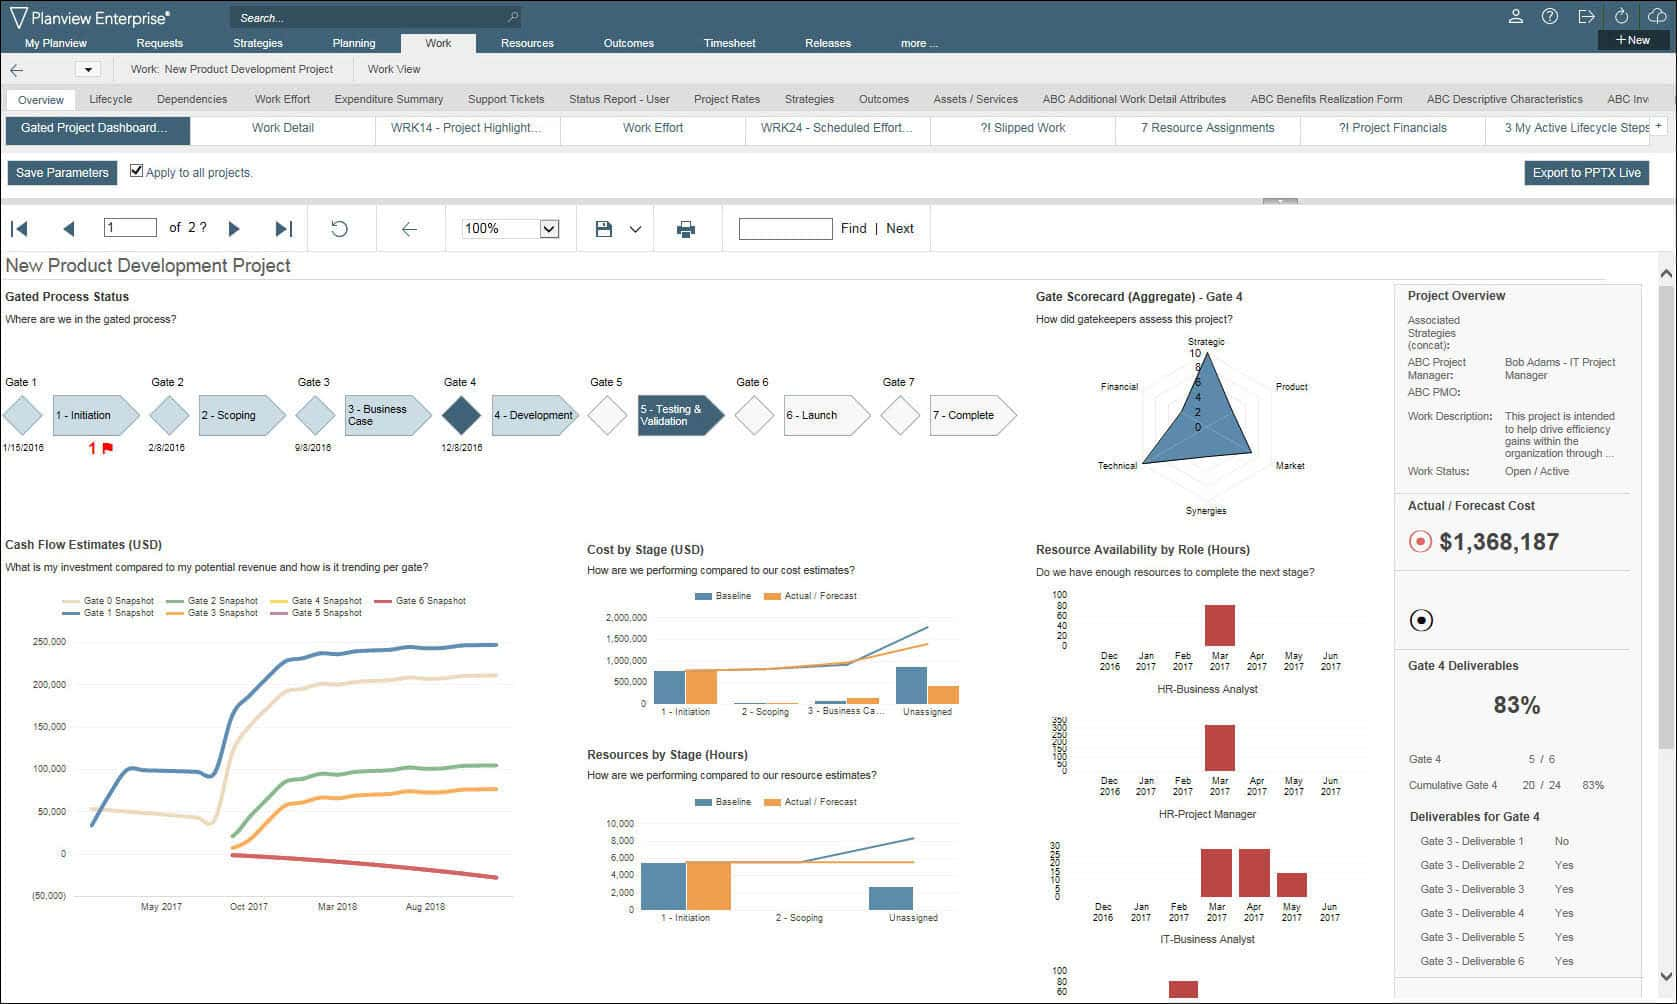 Planview Enterprise Dashboard Product Development